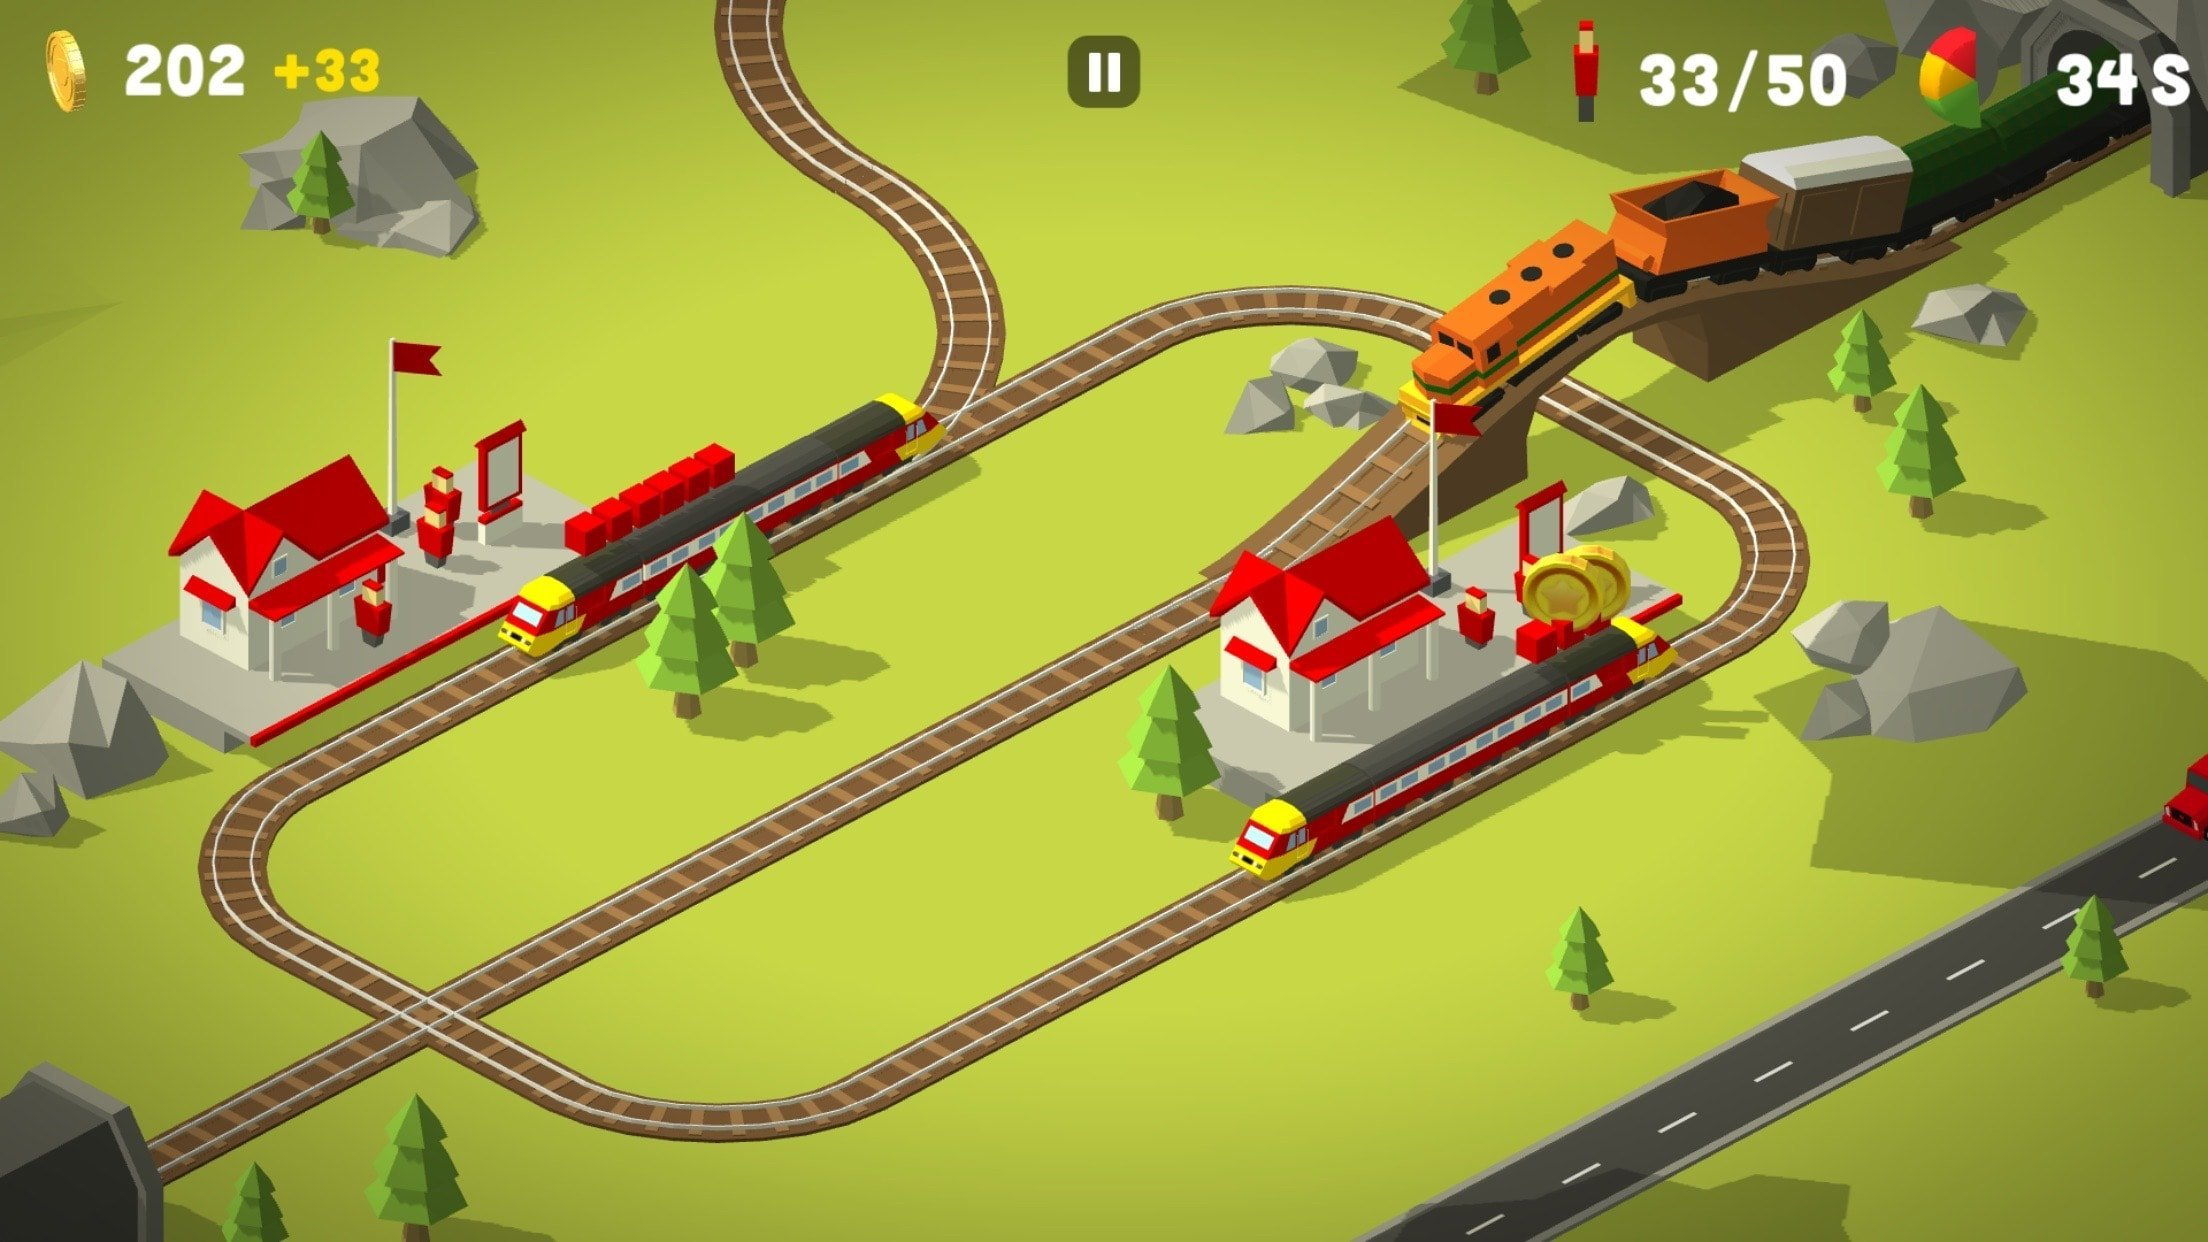 Conduct THIS! le nouveau jeu de train addictif disponible sur le Play Store